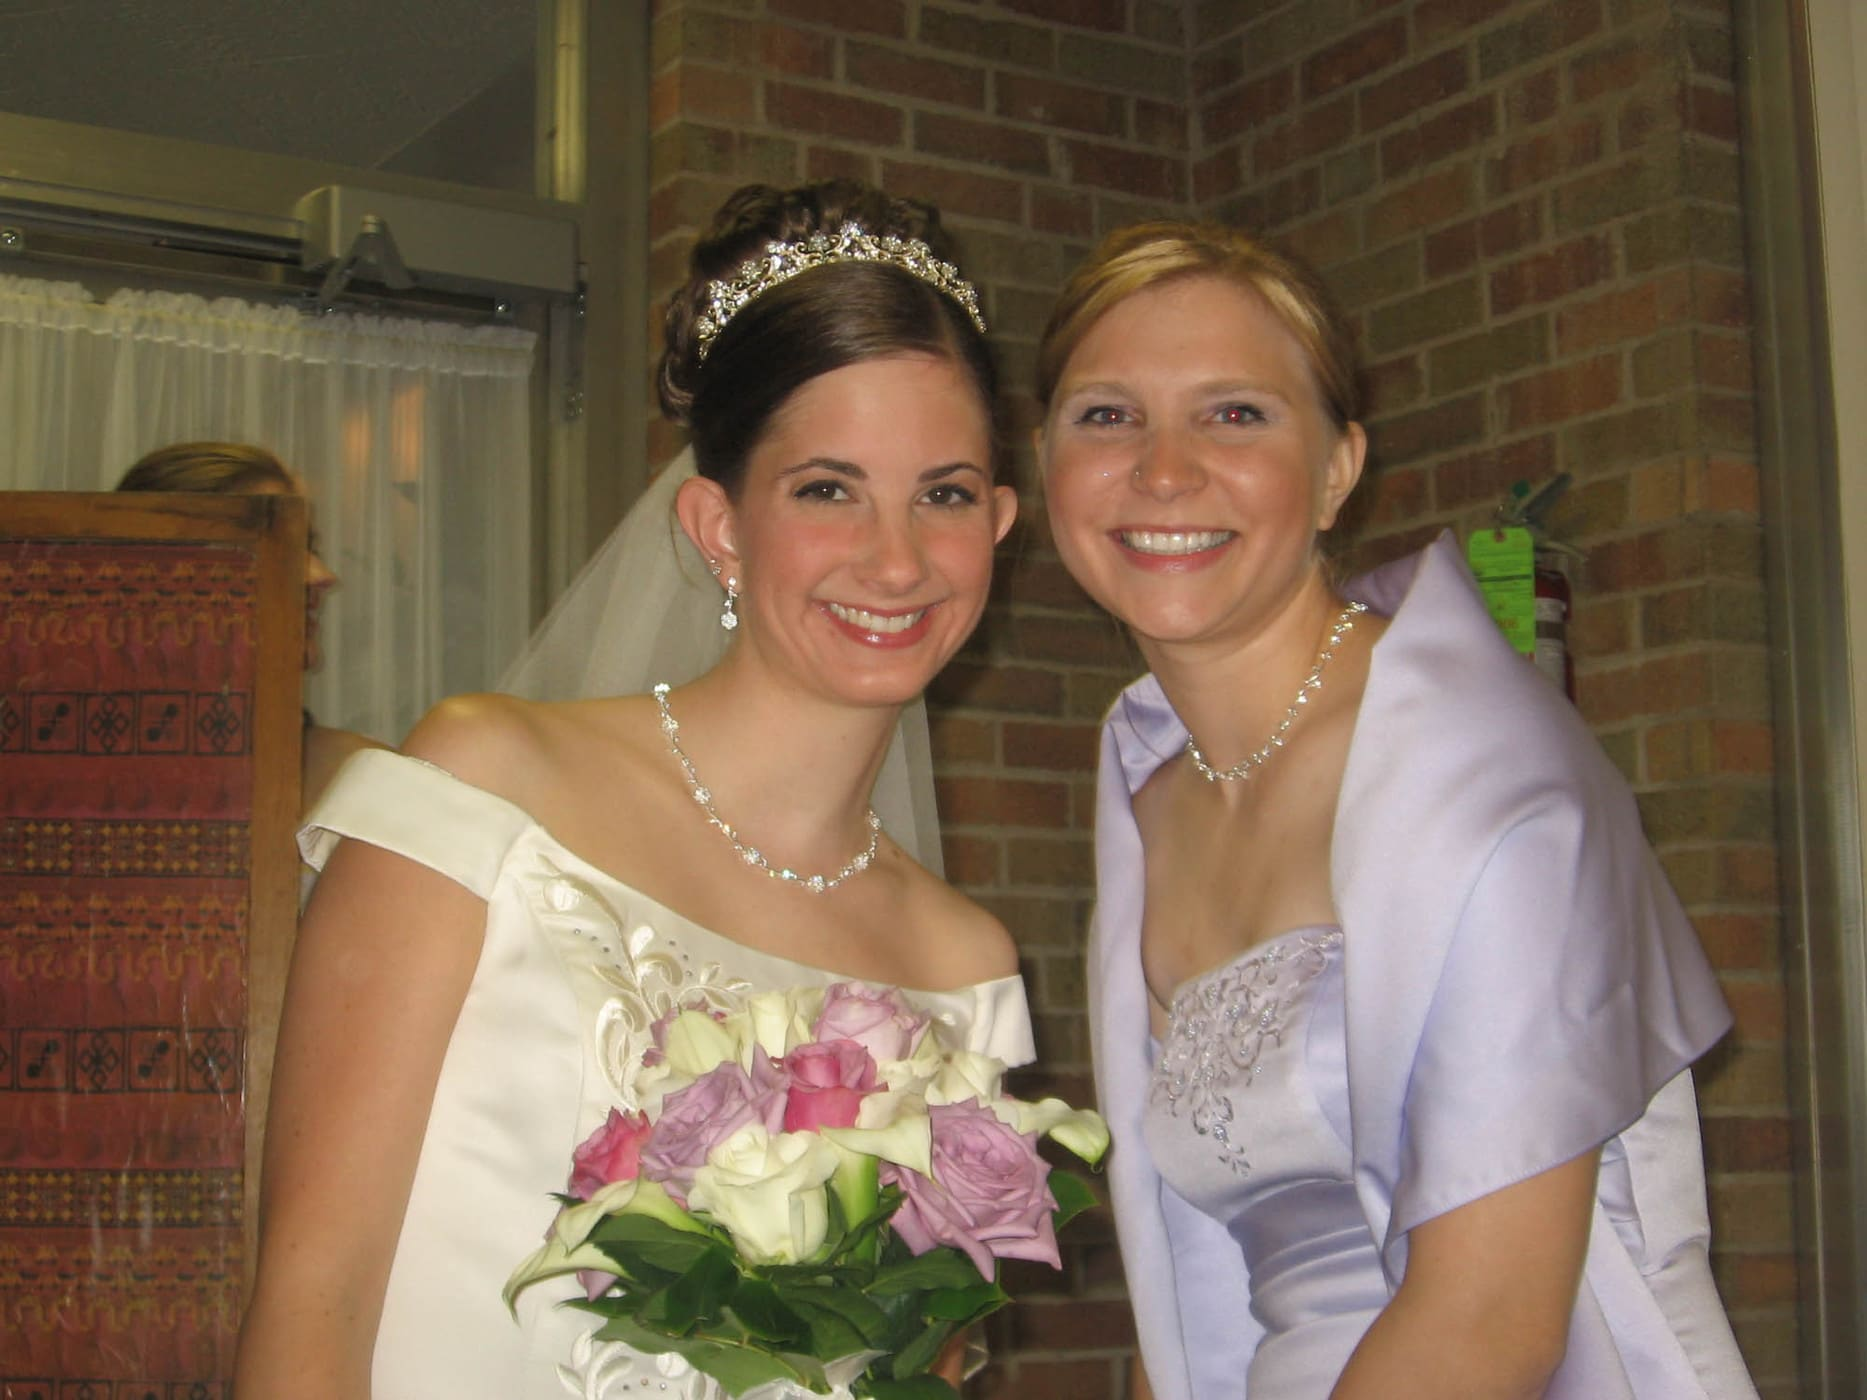 Me and Jenny at her wedding